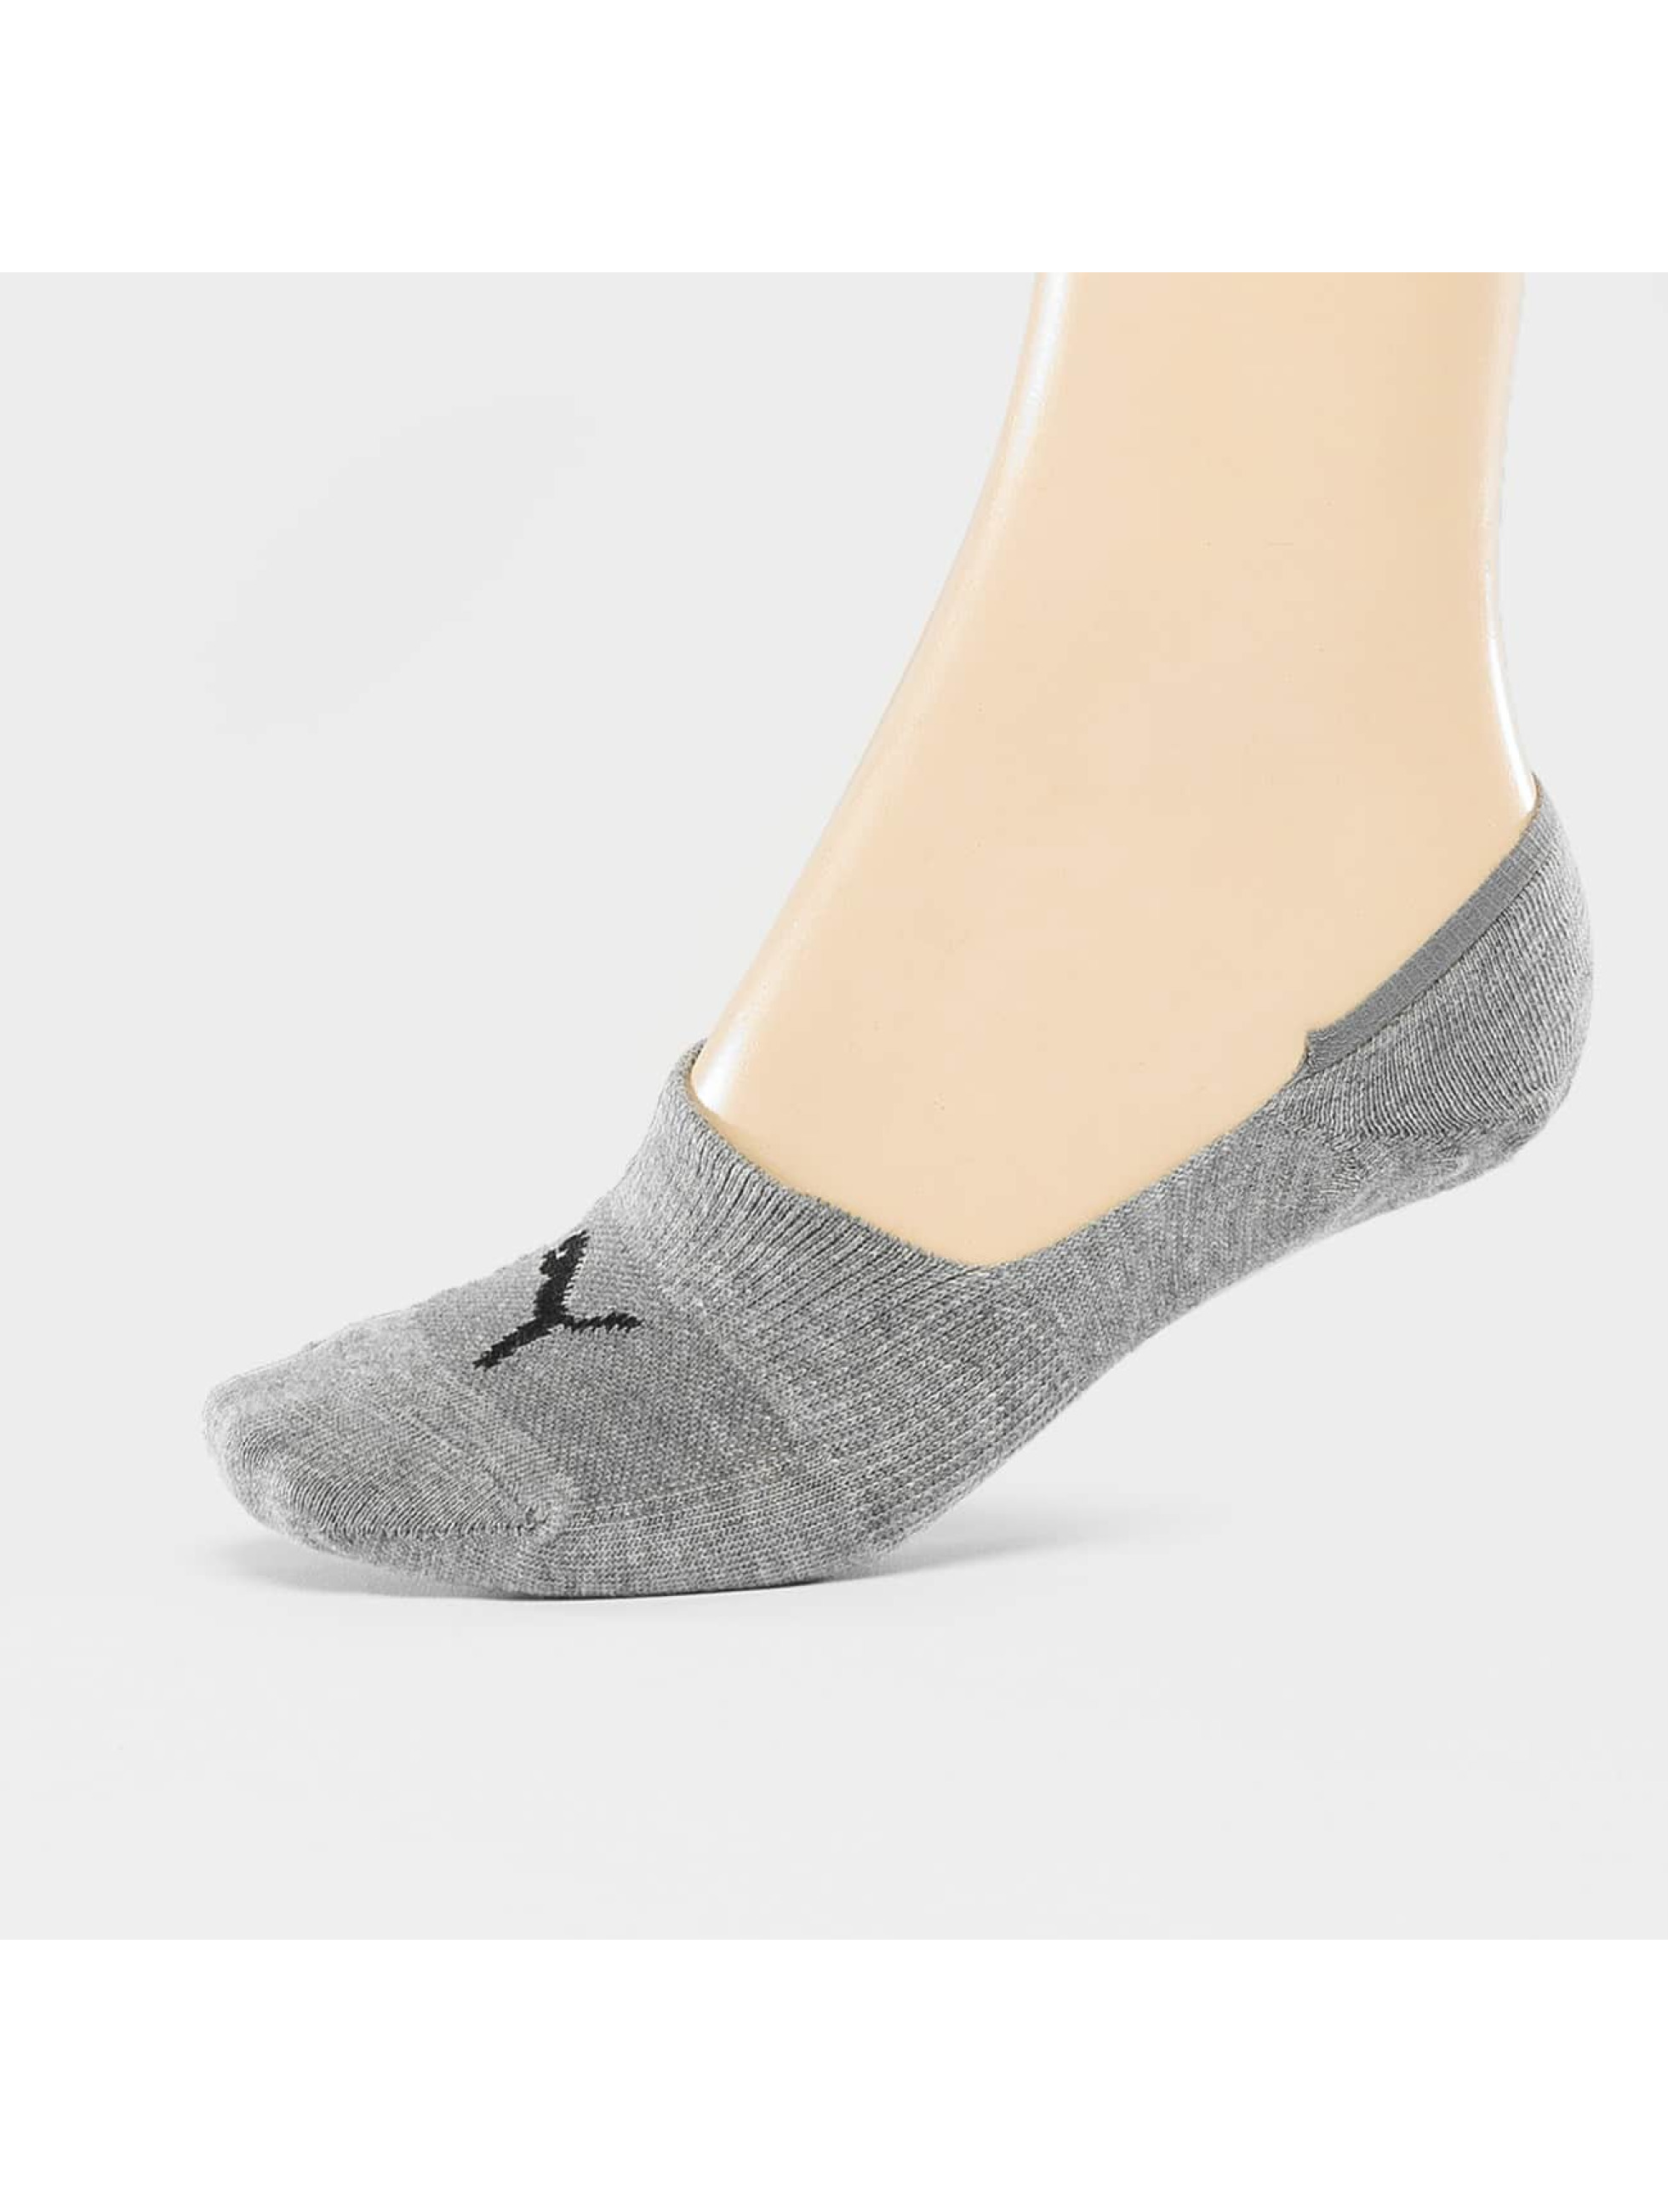 Puma Chaussettes 2-Pack Footies gris